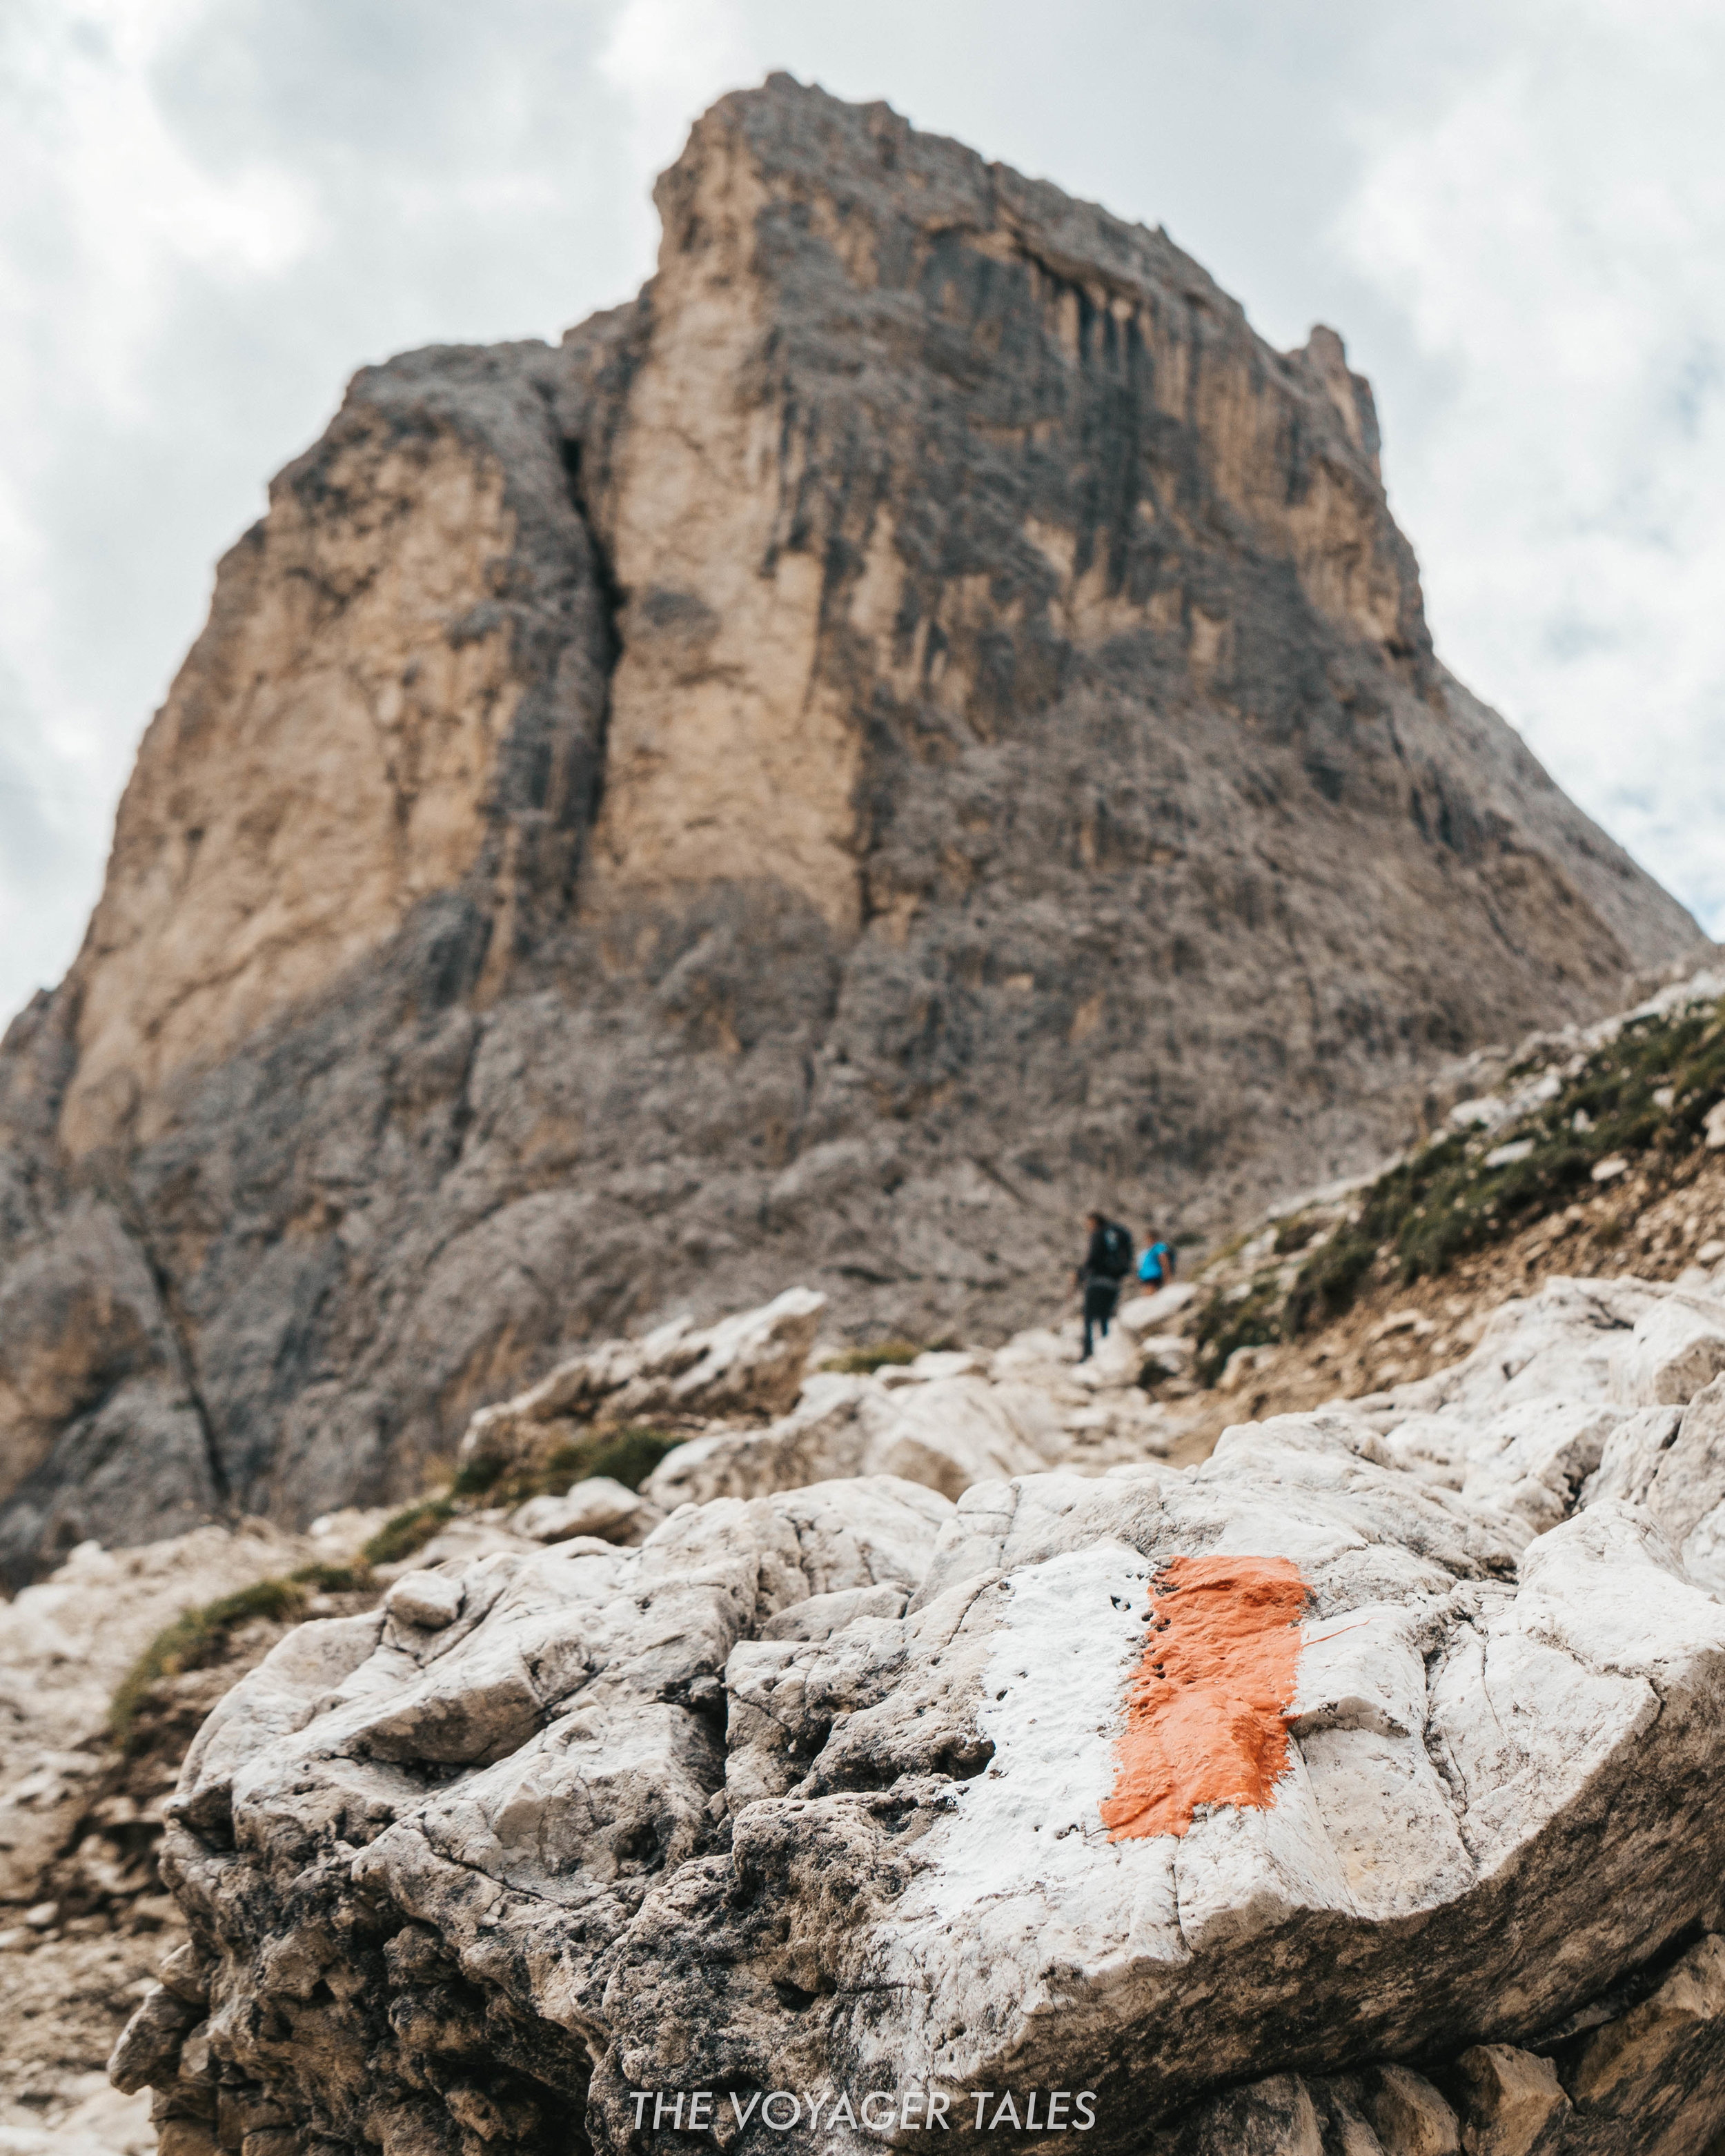 Markers to guide hikers on their way in the Dolomites, Italy